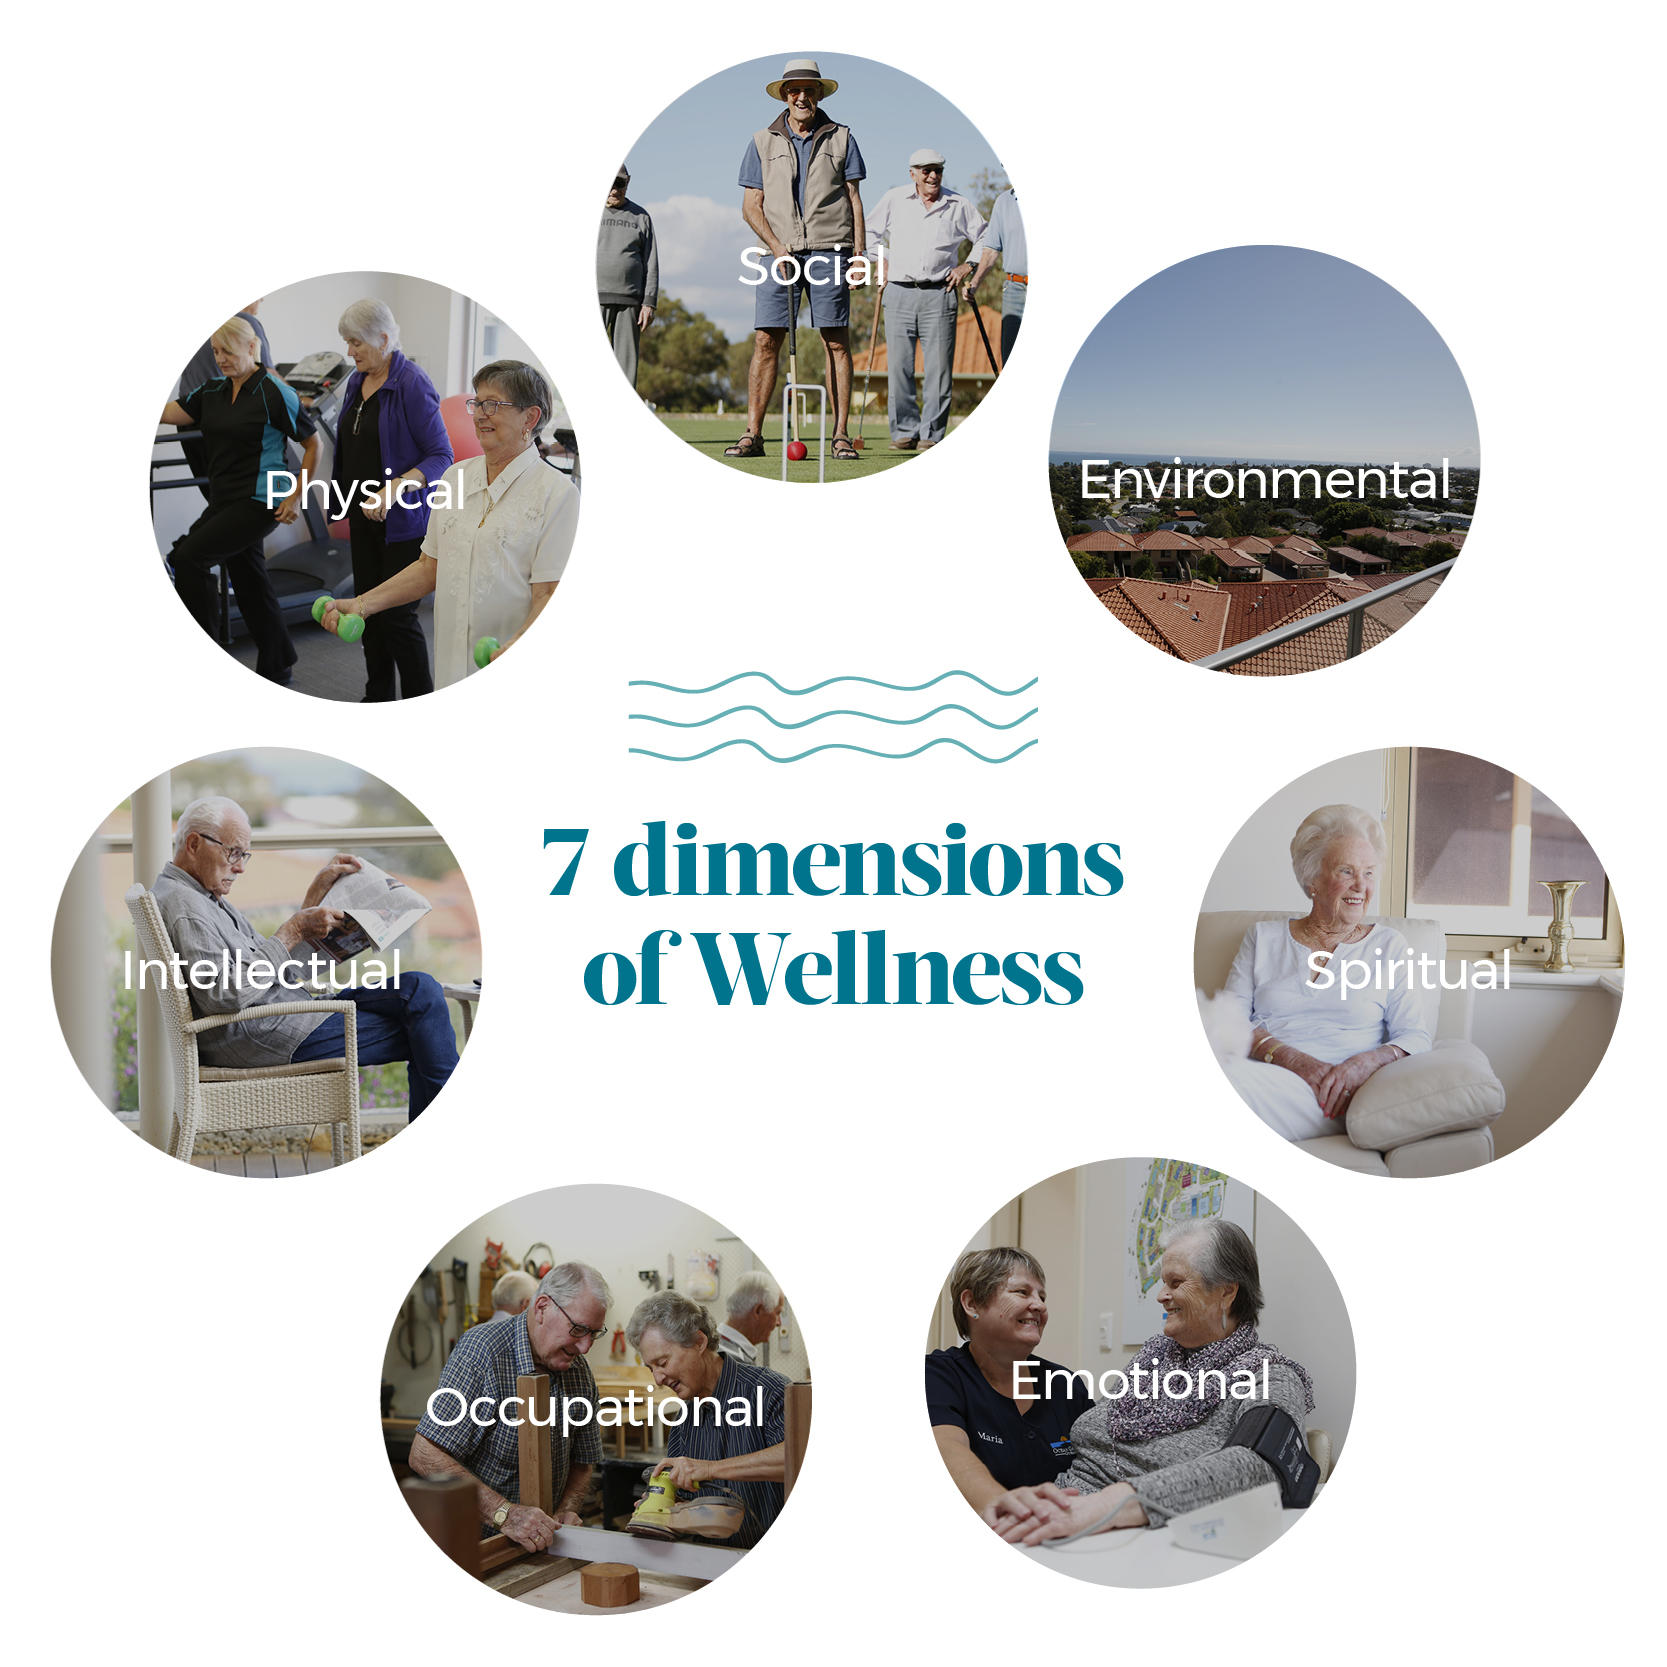 7 dimensions of wellness at ocean gardens